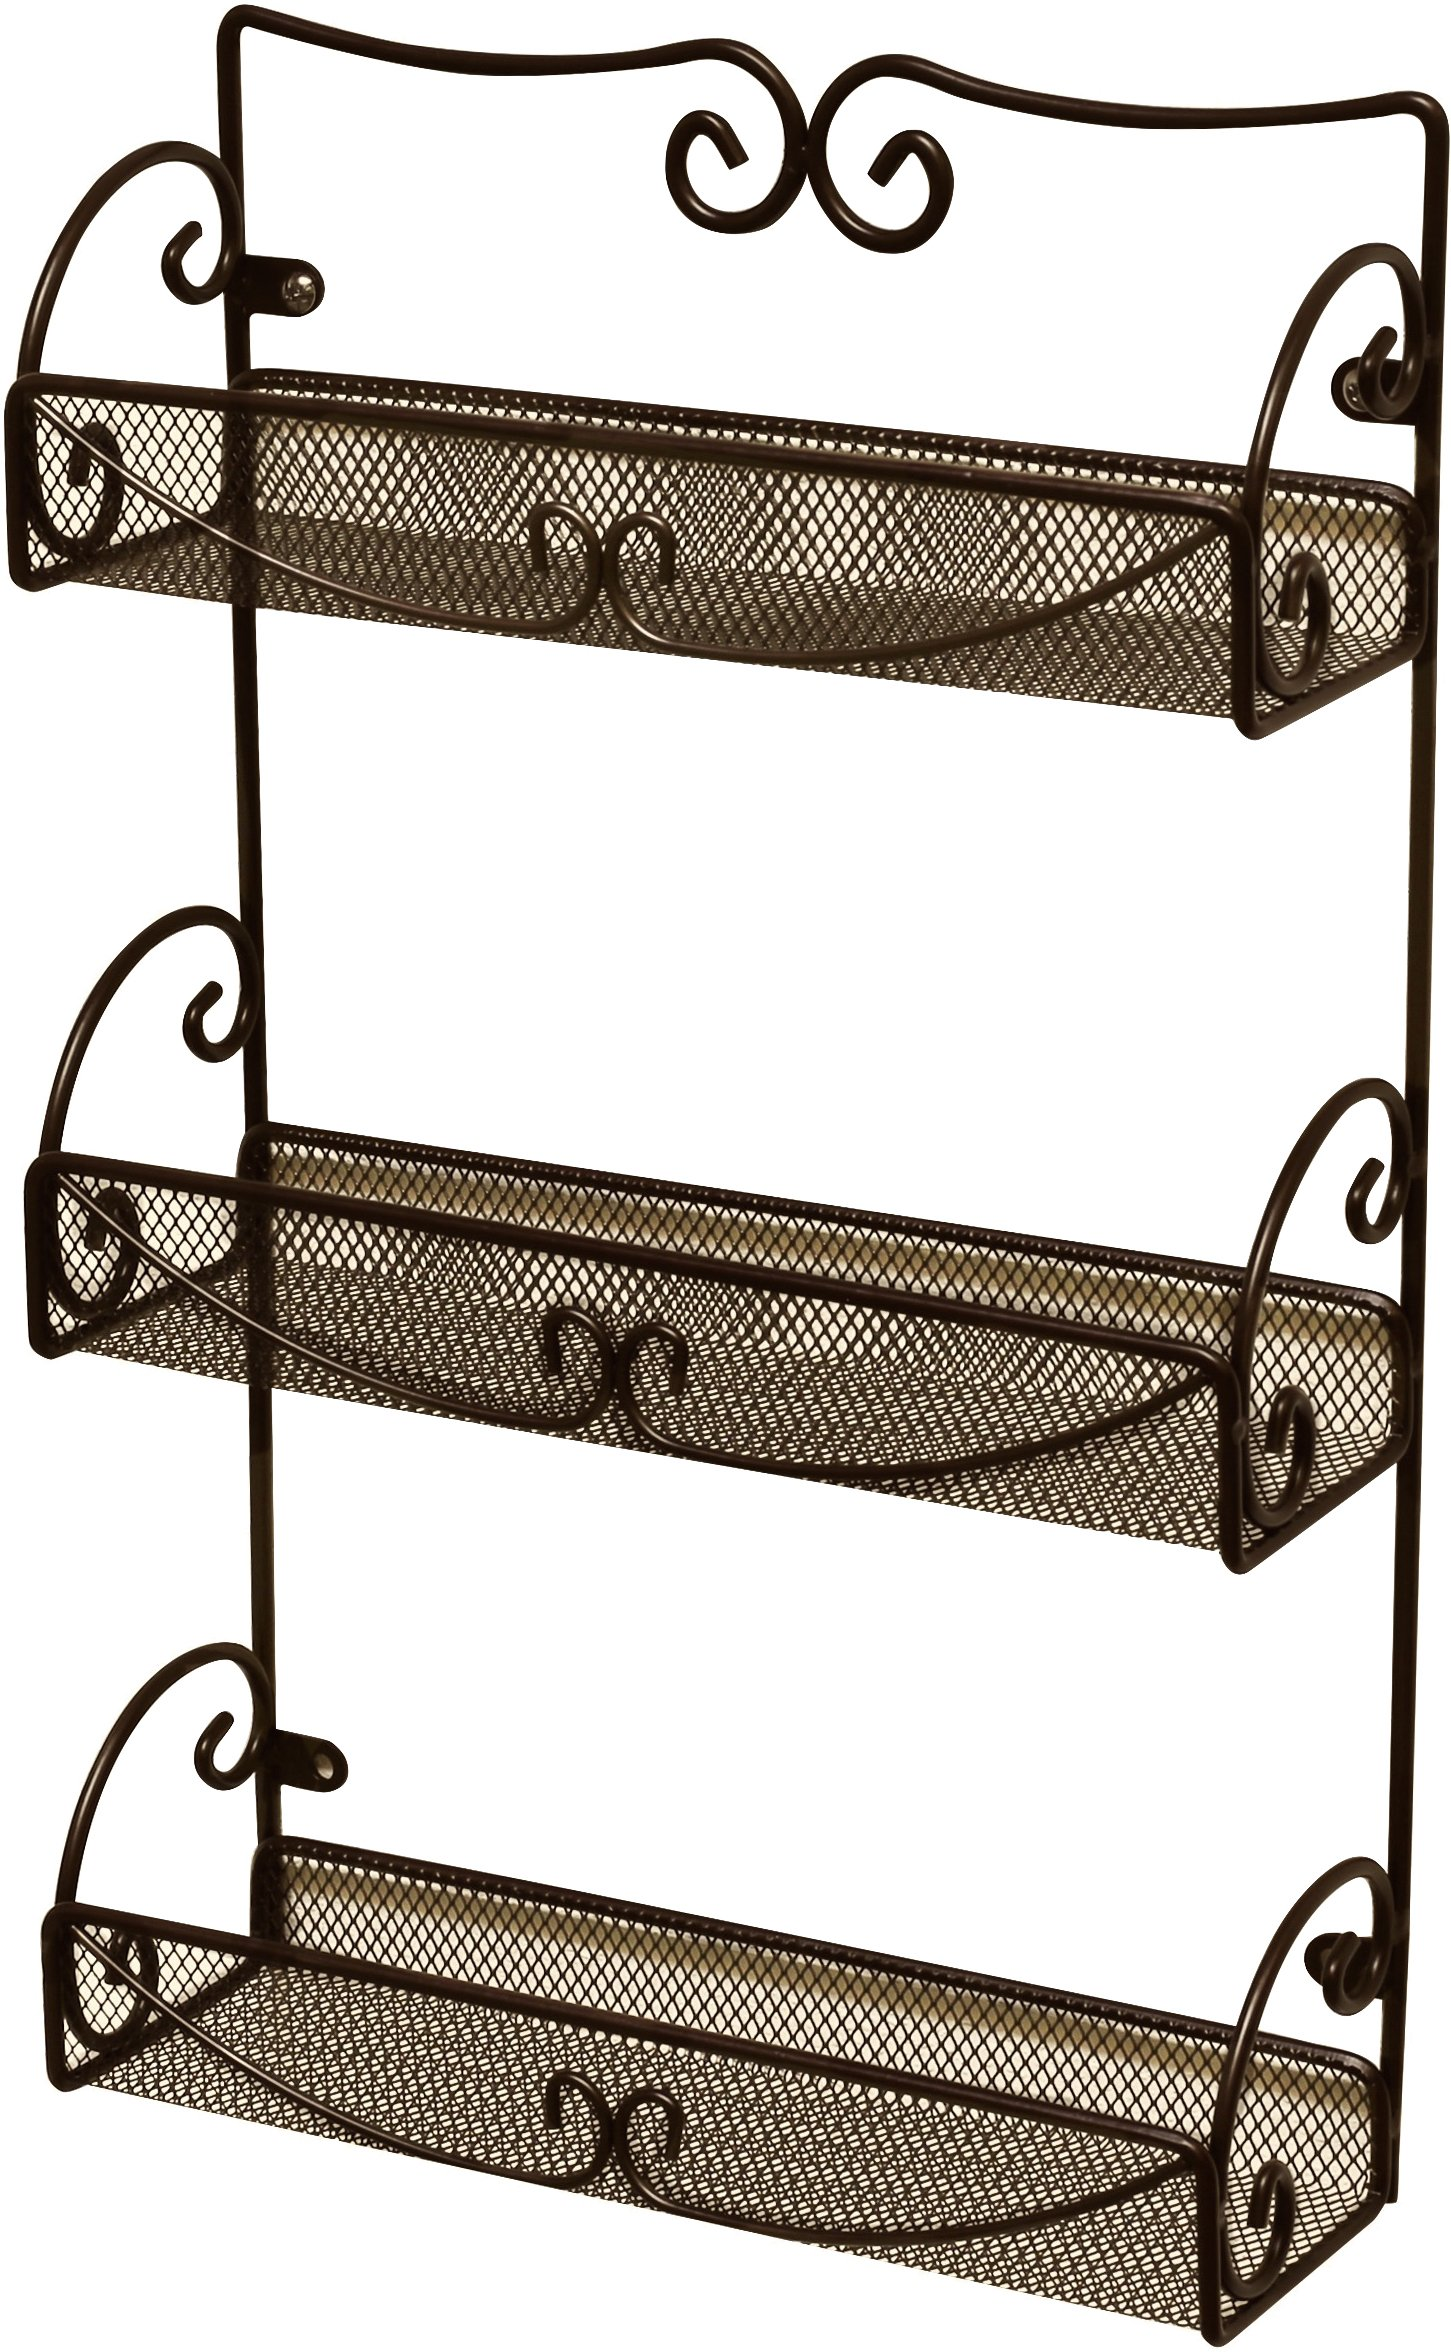 decobros 3 tier wall mounted spice rack bronze deco brothers ebay. Black Bedroom Furniture Sets. Home Design Ideas